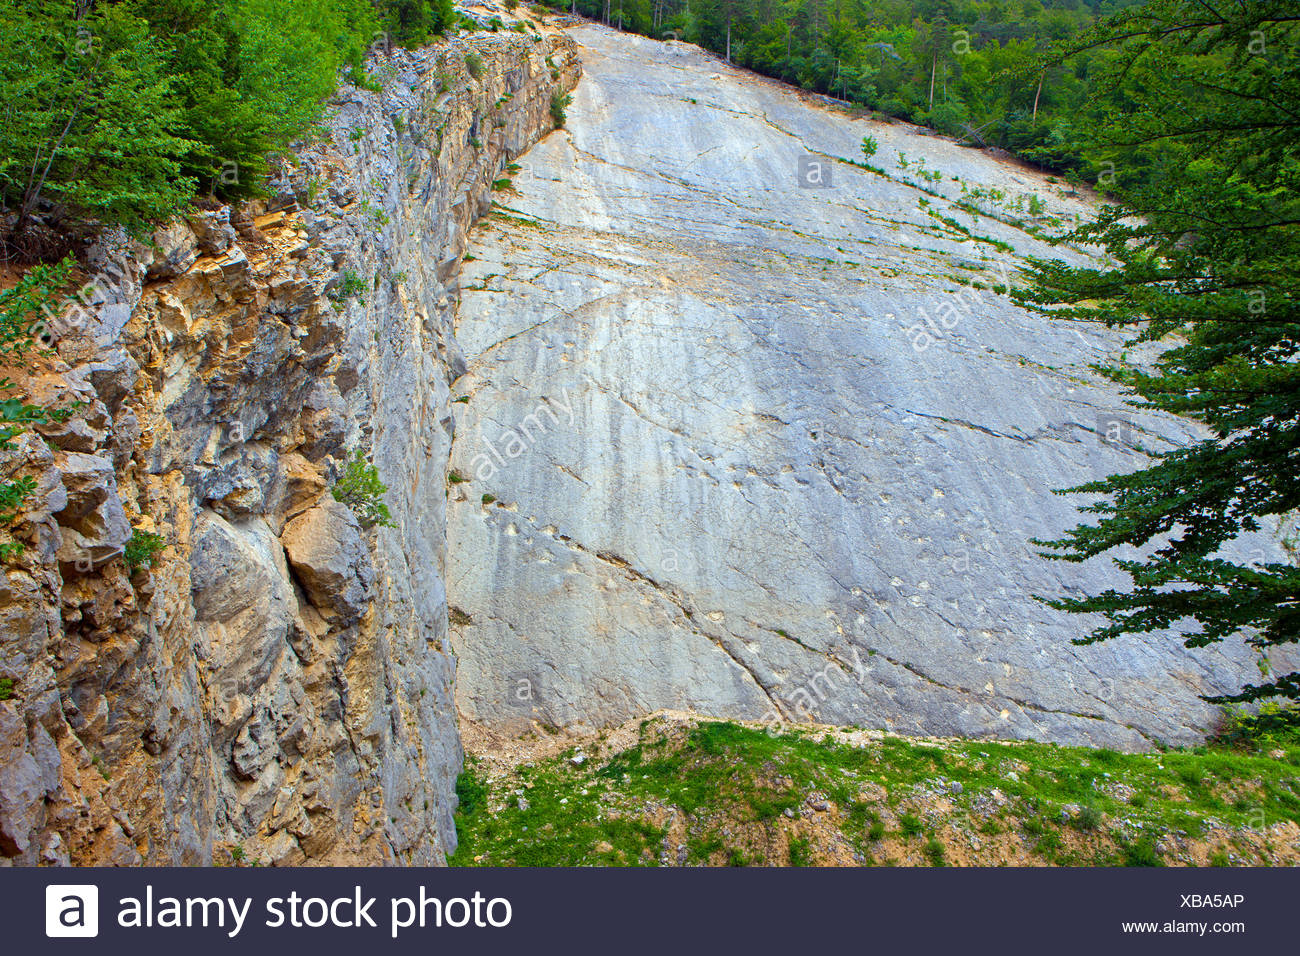 Lommiswil, saurian tracks, dinosaurs, Switzerland, canton Solothurn, stone quarry, rock, cliff, fossilization, fossils, geology, - Stock Image